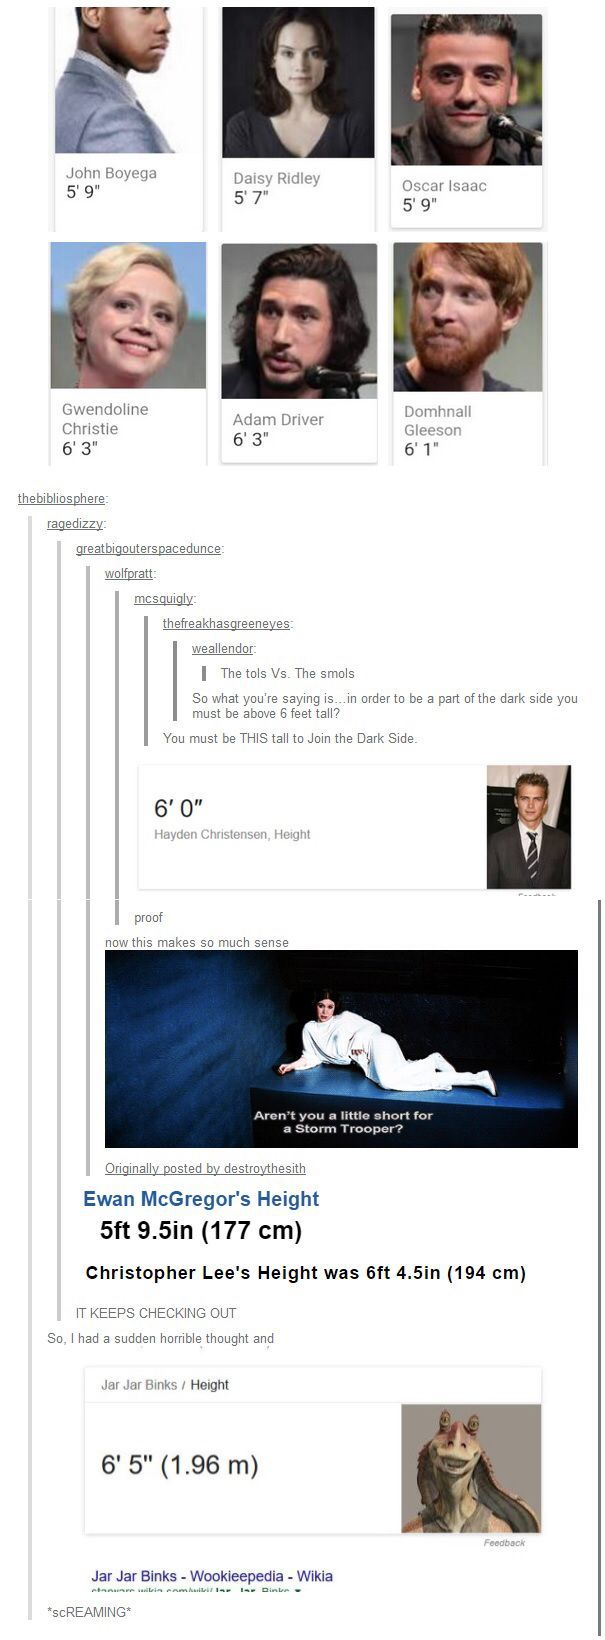 Oh my gosh, at the end!!  I am laughing so hard right now!...